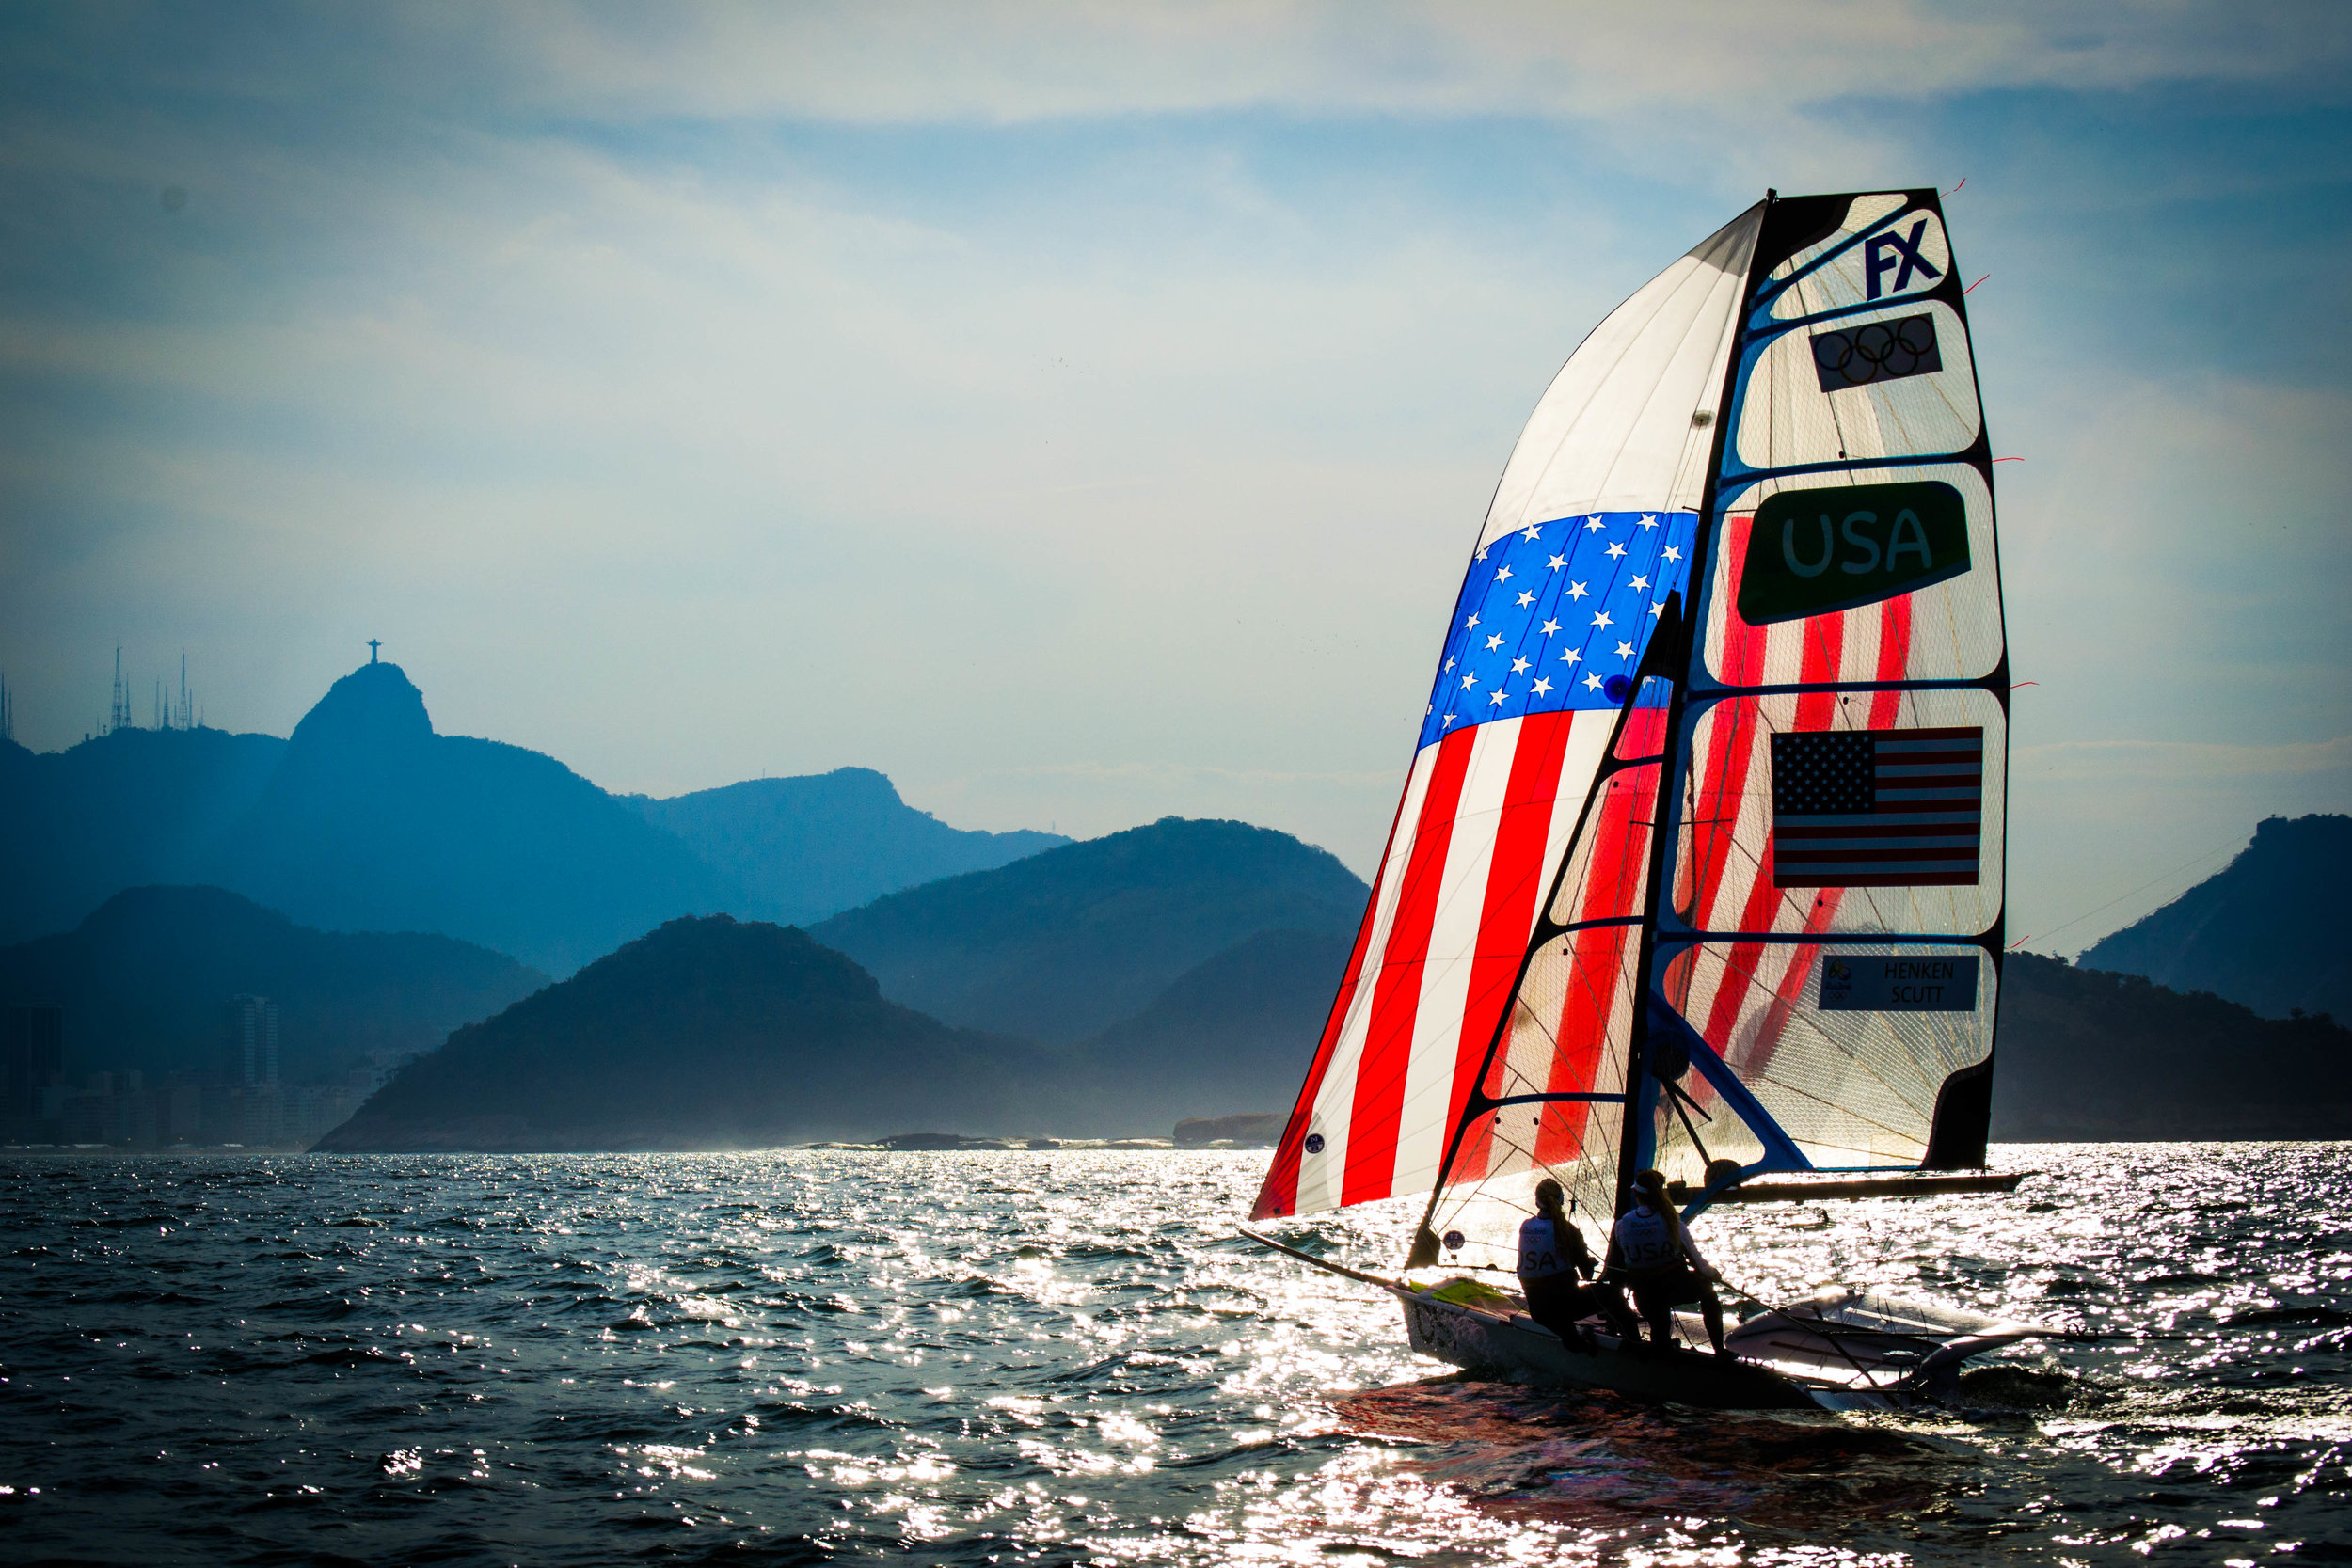 paris henken and helena scutt preparing for the Olympic games in their 49er FX sailboat